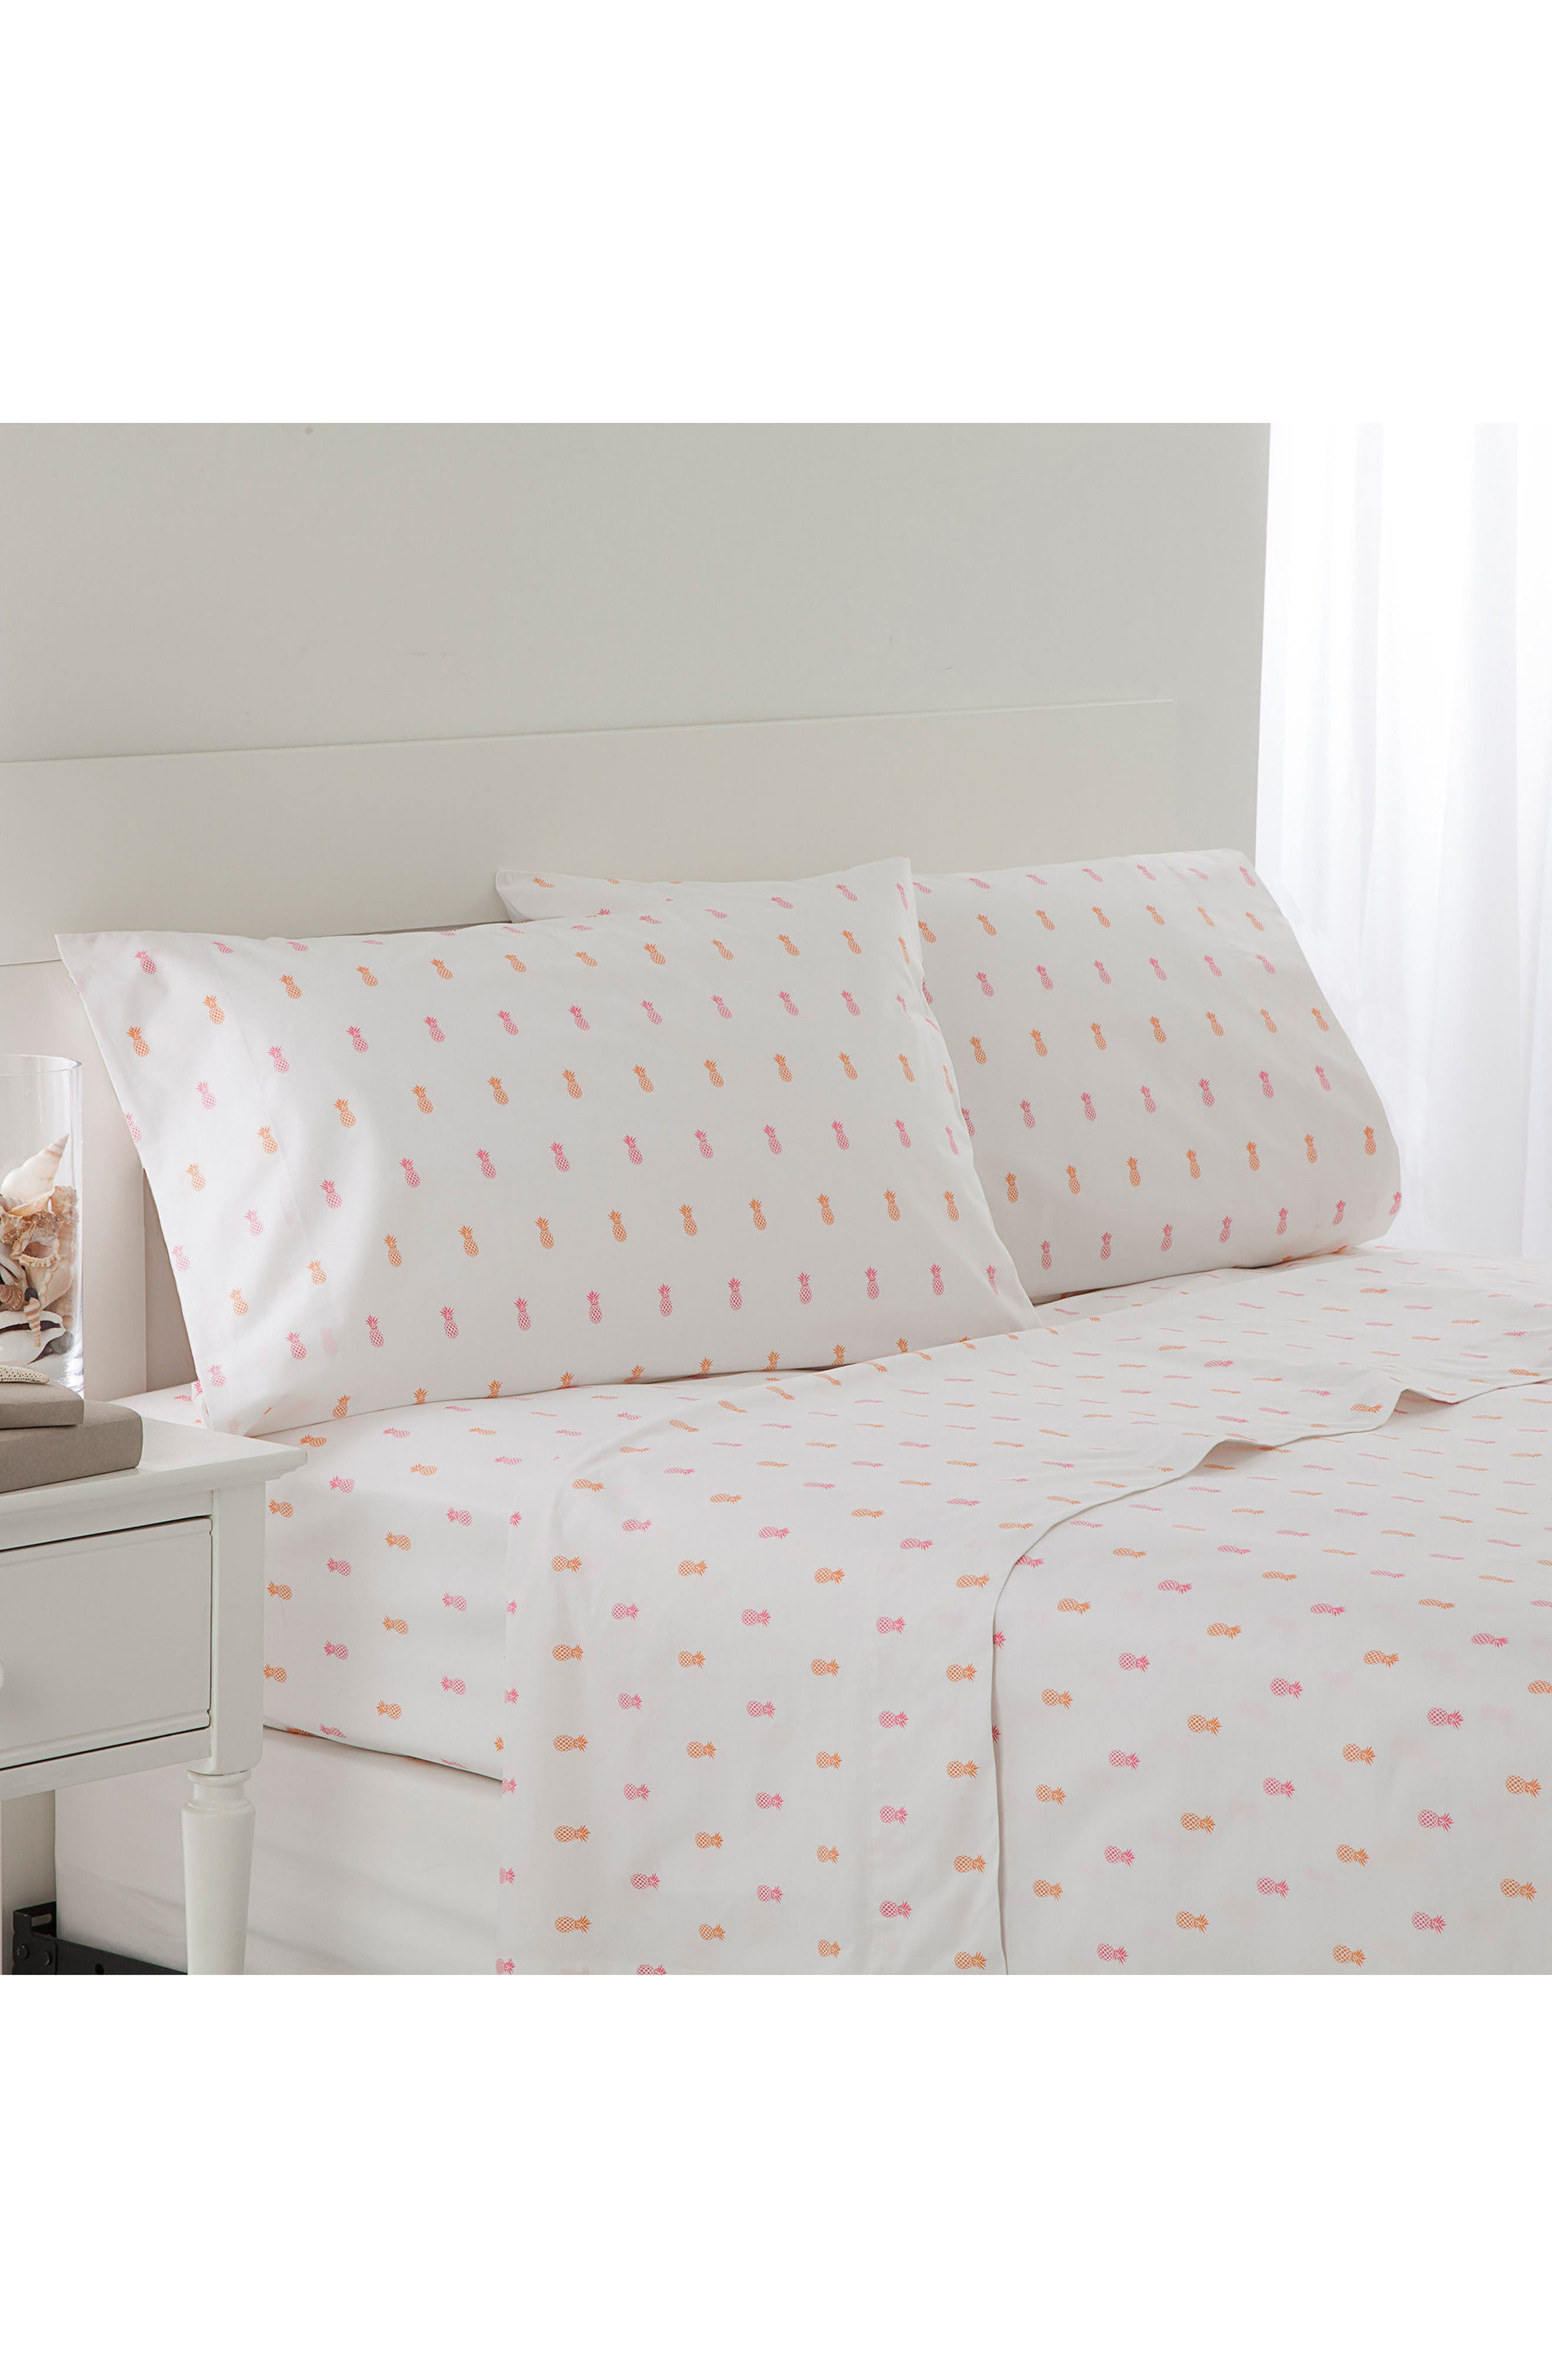 Main Image - Southern Tide Pineapple Sheet Set